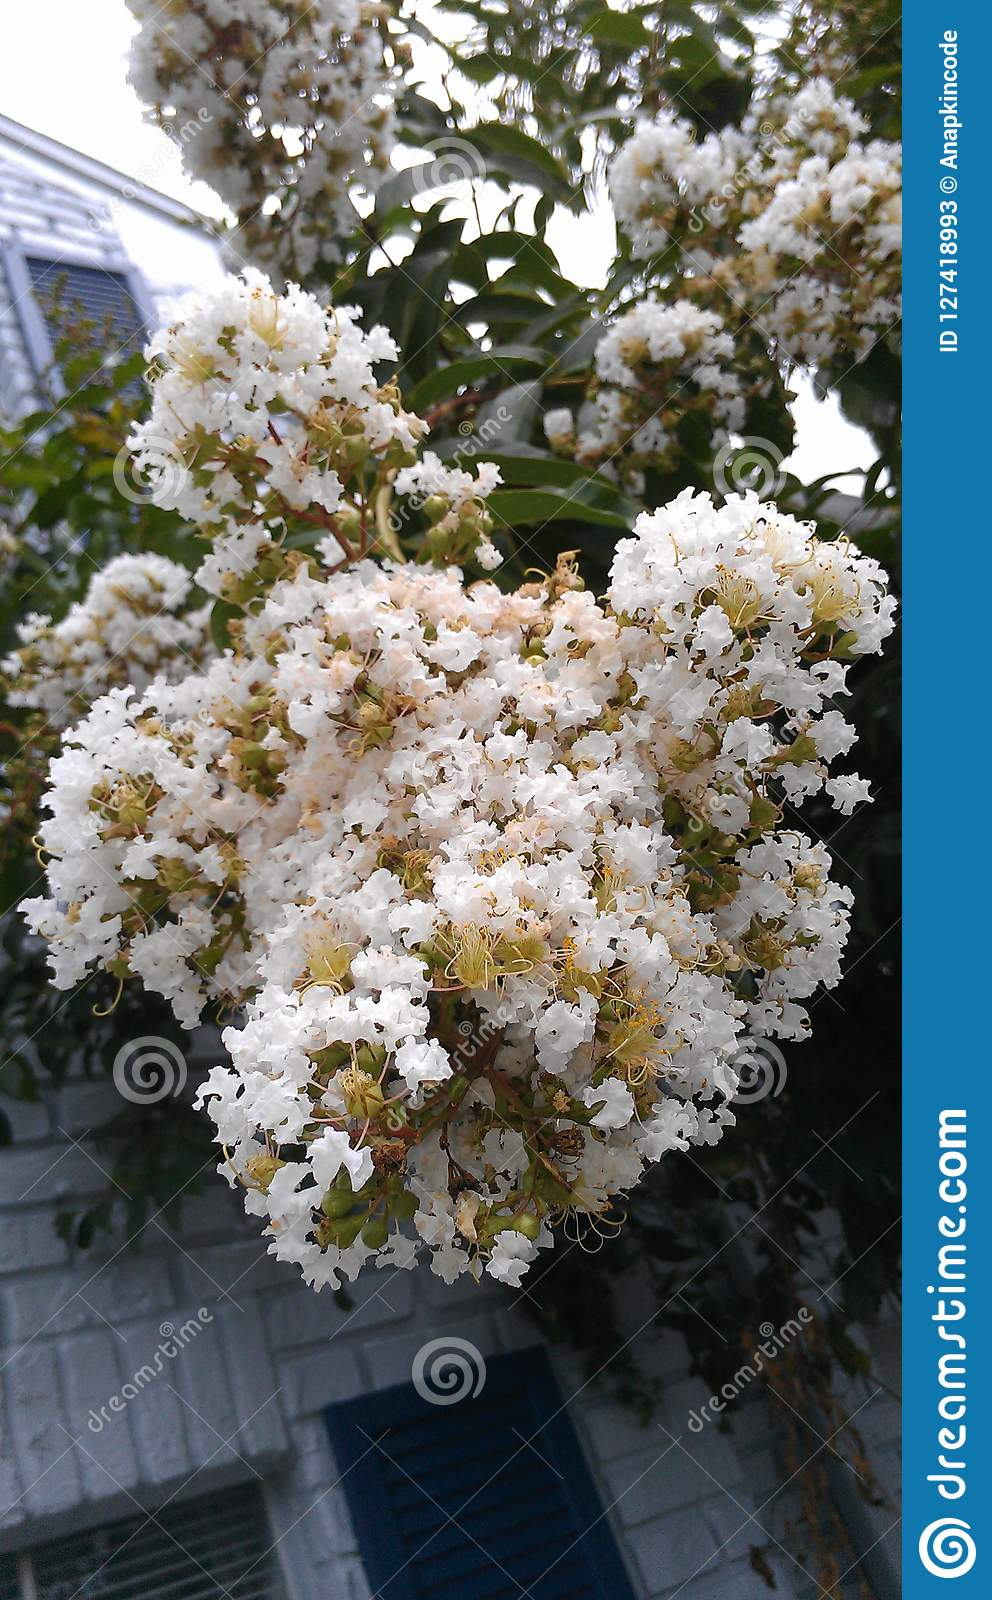 Bundles Of Small White Flowers Growing On A Tree Stock Image